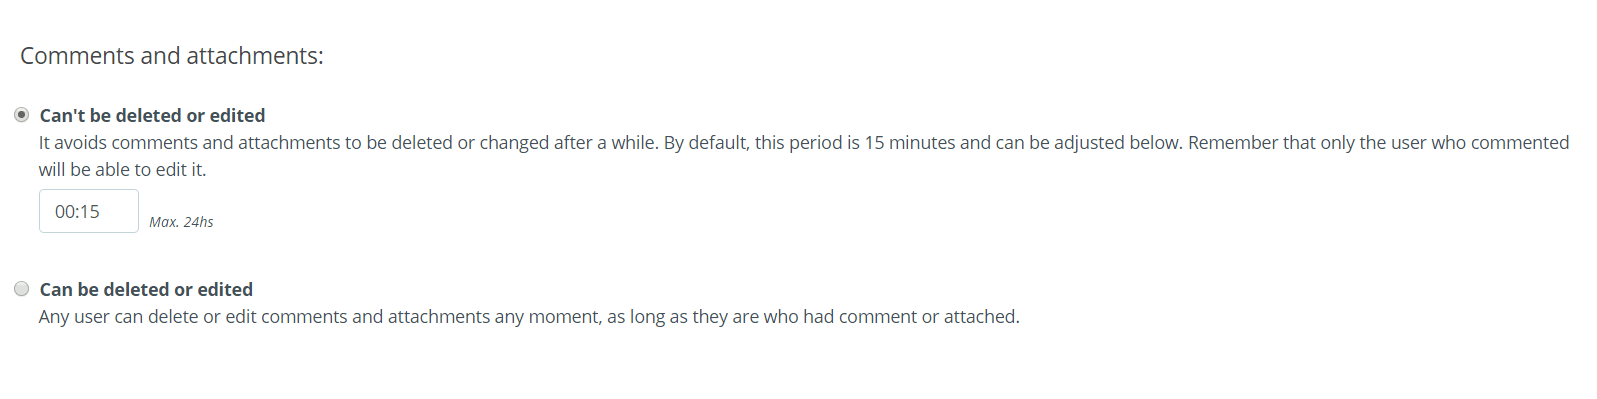 new_comments_runrunit